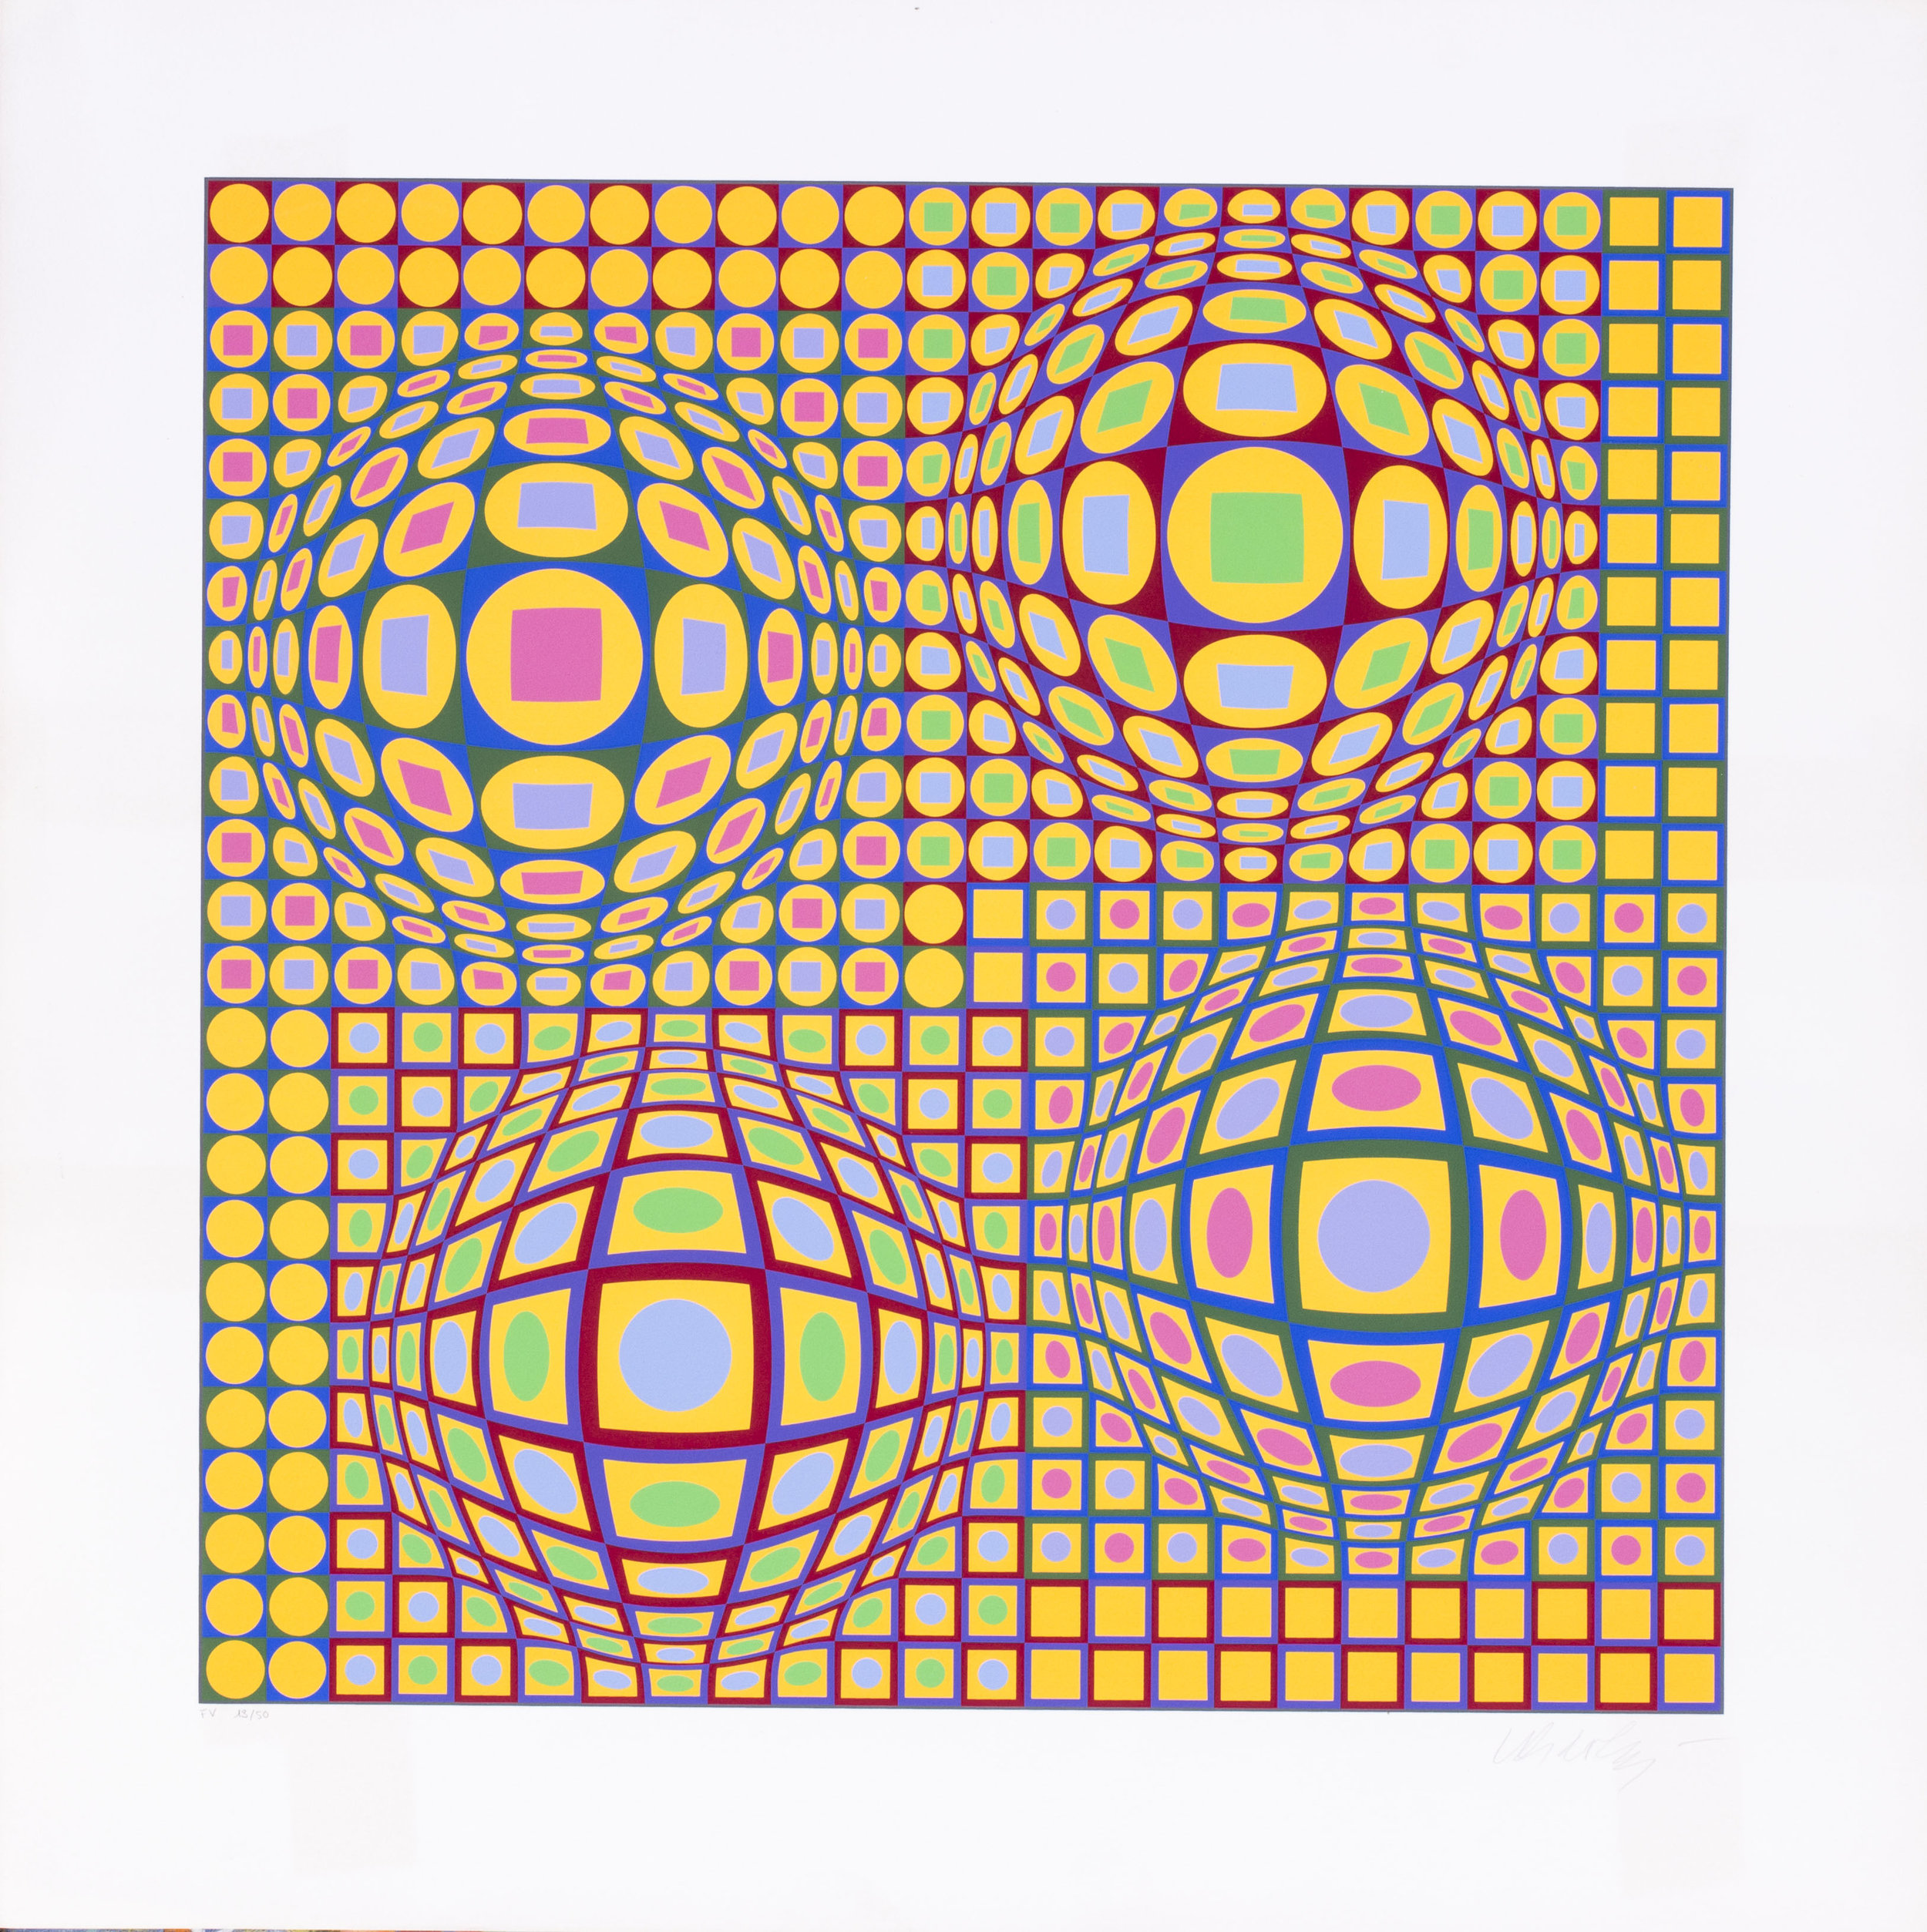 Victor Vasarely   Quadrature, 1976-1978   Numbered 'F.V. 13/50' and signed 'Vasarely' (lower right)  Screen print  13.3/4 x 13.3/4 in. (78 x 78 cm.)   Price: £1,200